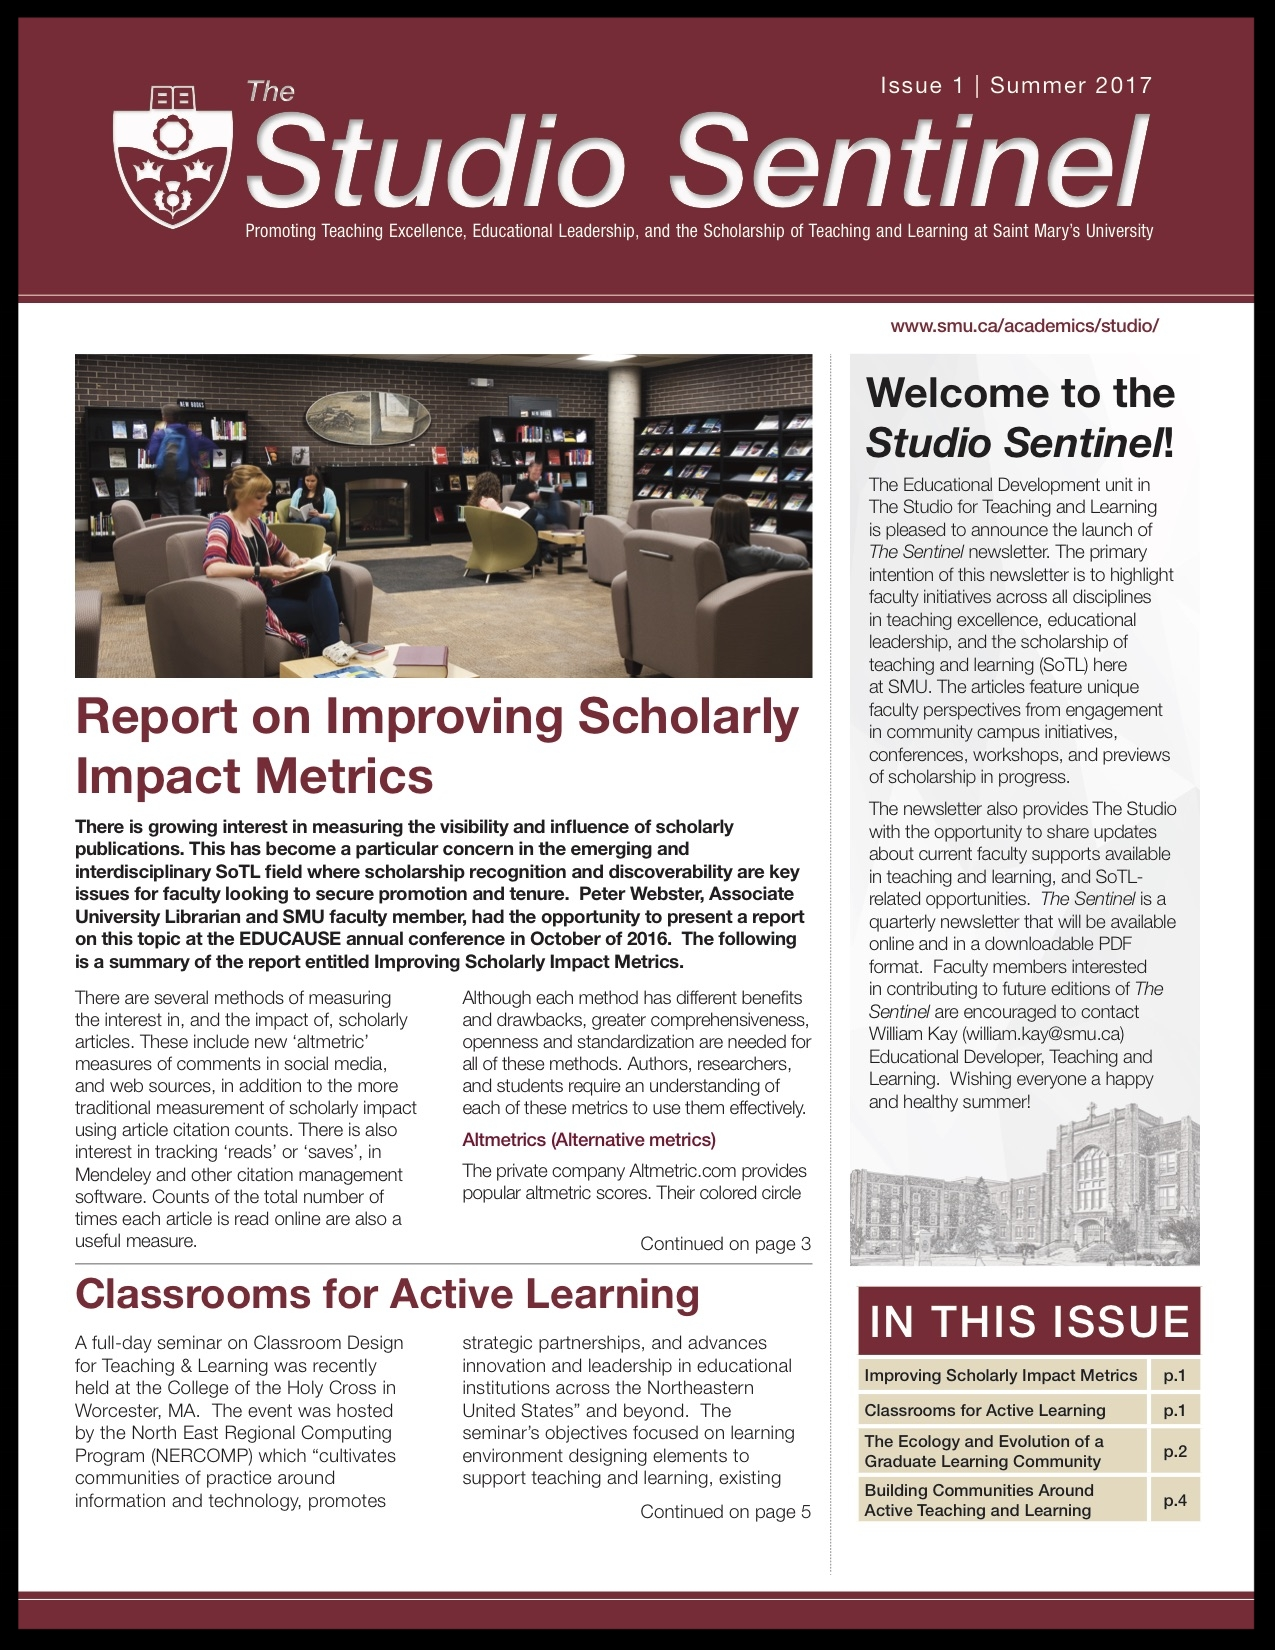 Issue 1: Summer 2017 - Improving Scholarly Impact MetricsClassrooms for Active LearningThe Ecology and Evolution of a Graduate Learning CommunityBuilding Communities Around Active Teaching and LearningTeaching Award Announcements